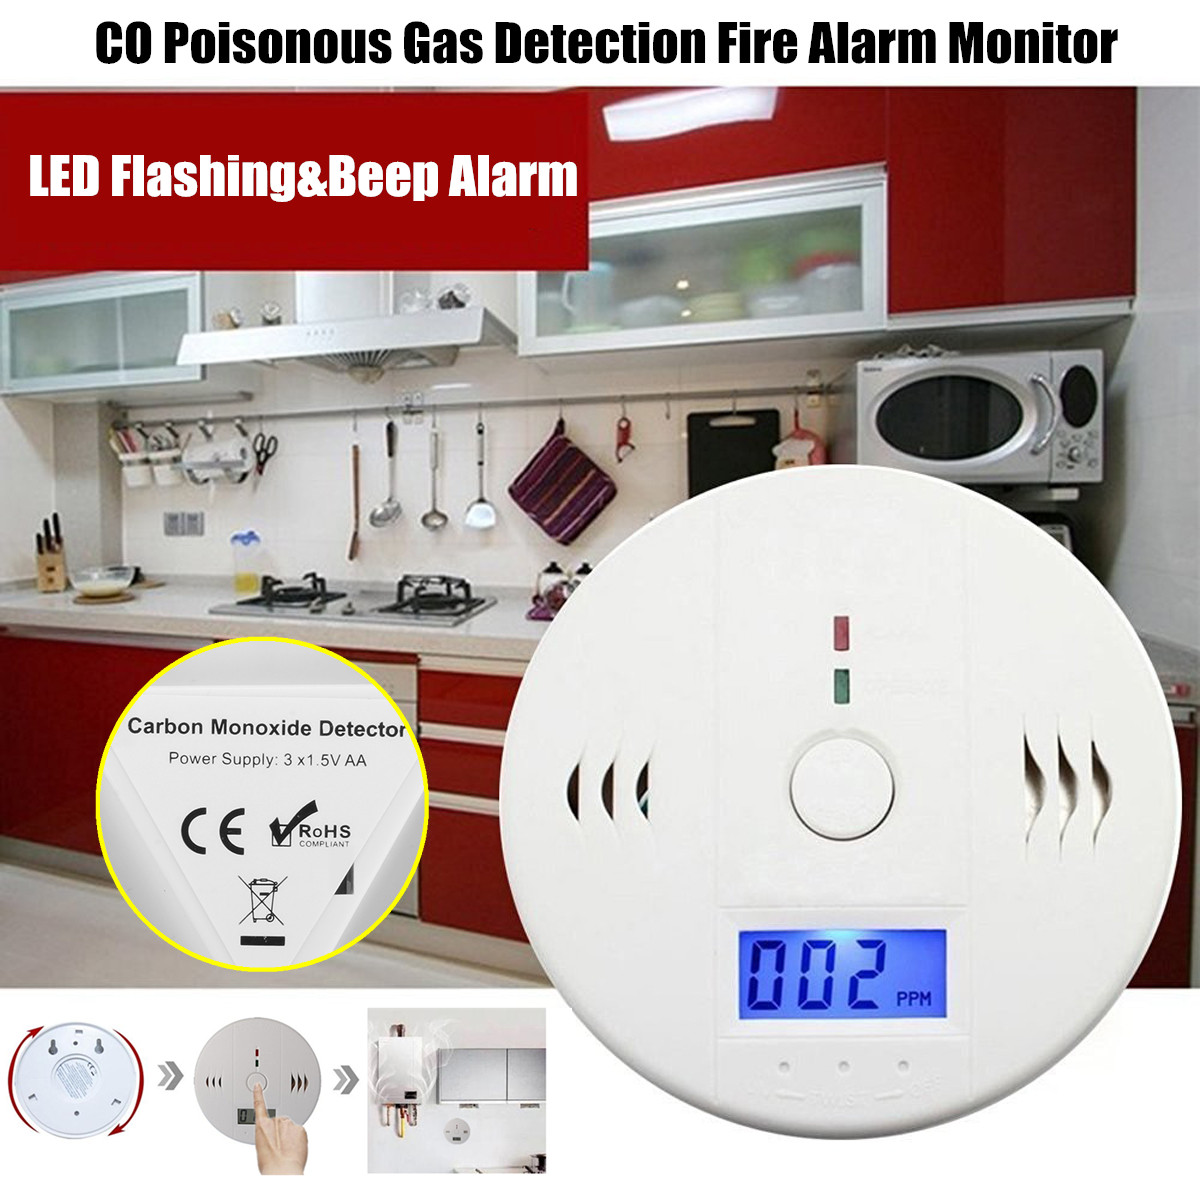 1-20 Pack Battery Operated CO Carbon Monoxide Sensor Alarm Alert 1-20 Detector Tester Poisonous Gas Detection Fire Alarm Monitor Digital LCD Display for CO Level Home Security Safety CE